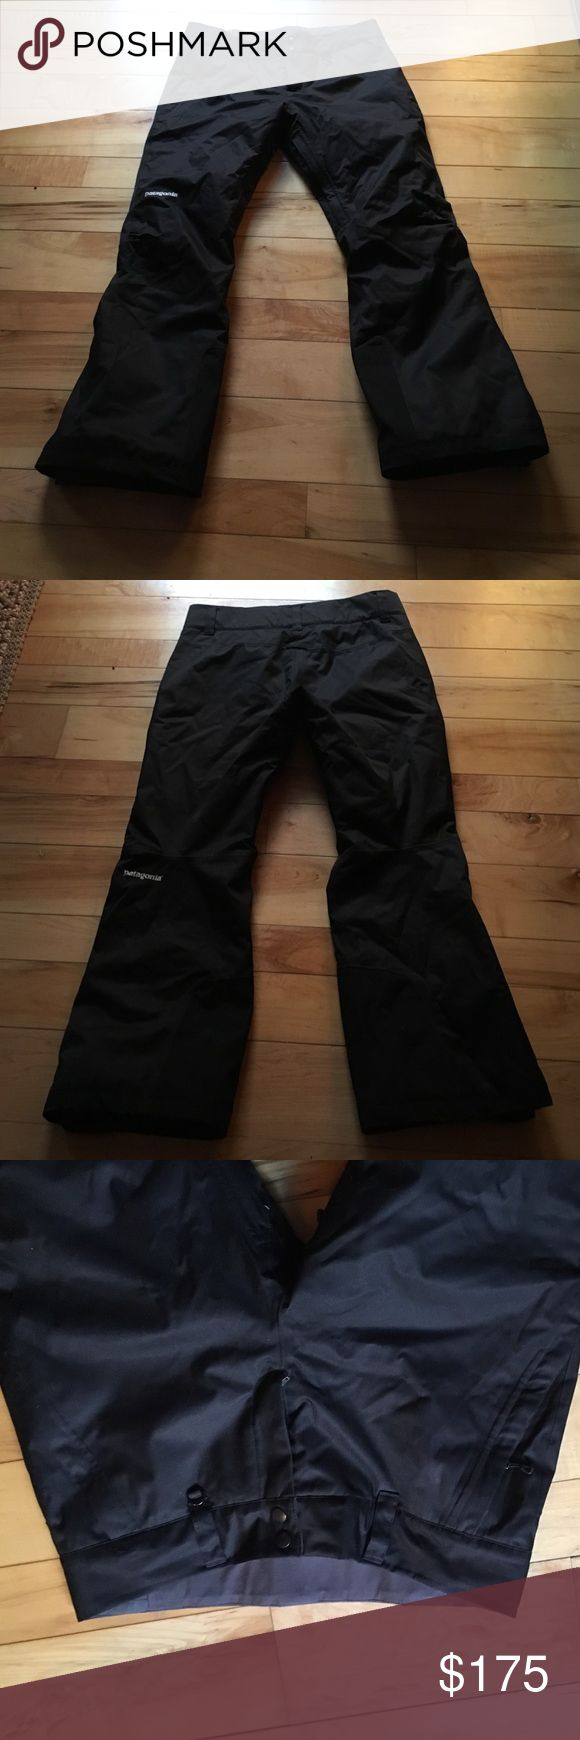 Patagonia ski pants. Patagonia Snowbelle Insulated ski pants. Worn once. Perfect condition. Very warm. 30inch inseam Patagonia Other